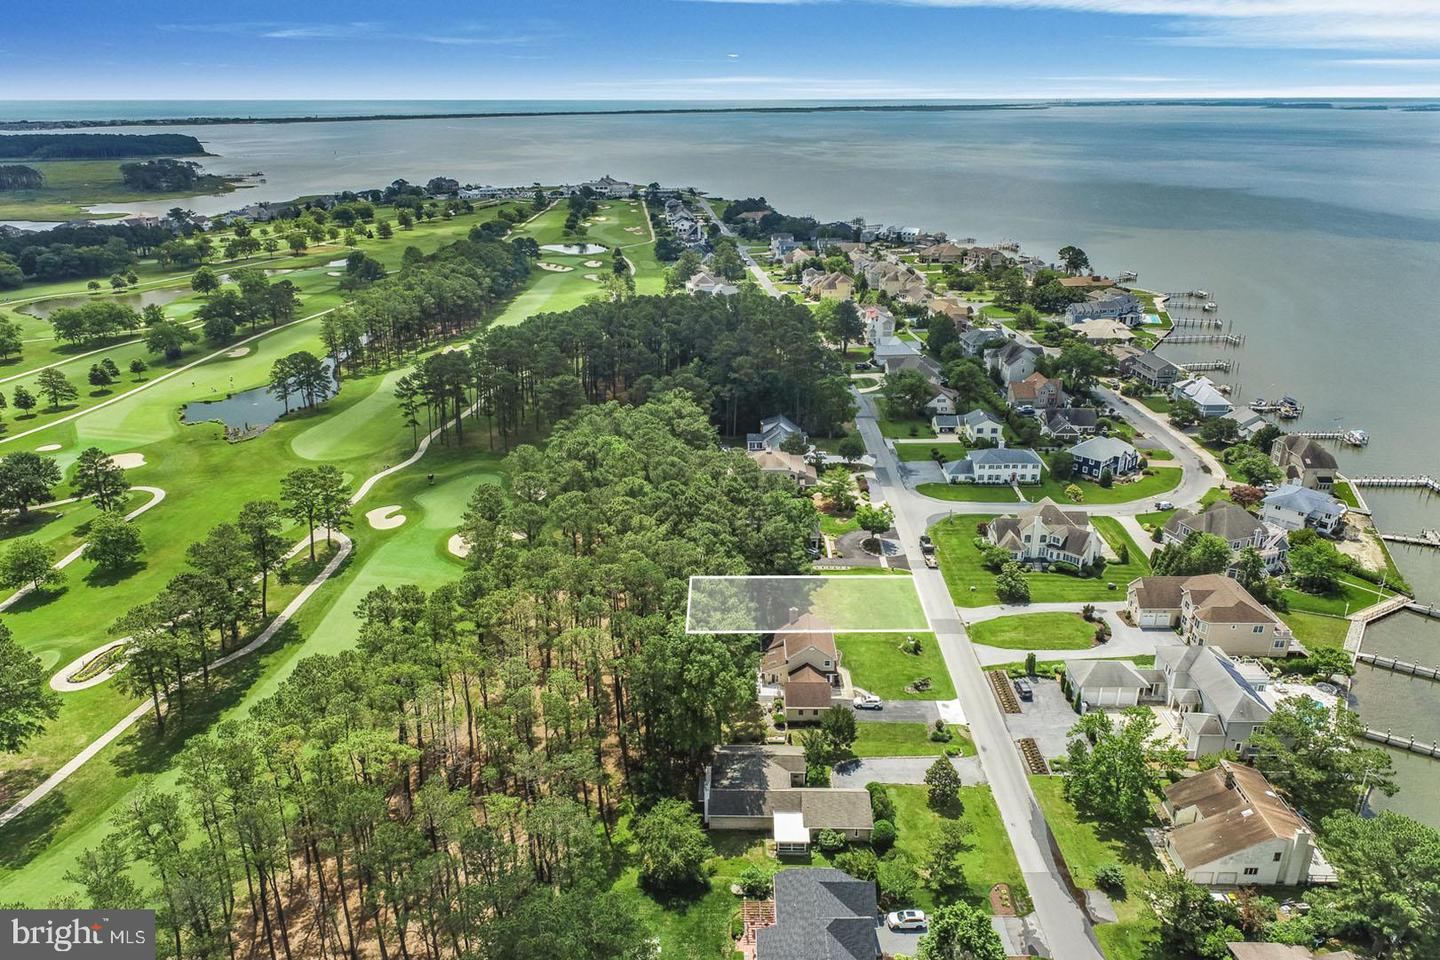 DESU184568-800781372746-2021-07-14-19-50-25 Lots and Land for sale in Rehoboth Beach, Dewey Beach and More - Rehoboth Beach Real Estate - Bryce Lingo and Shaun Tull REALTORS, Rehoboth Beach, Delaware